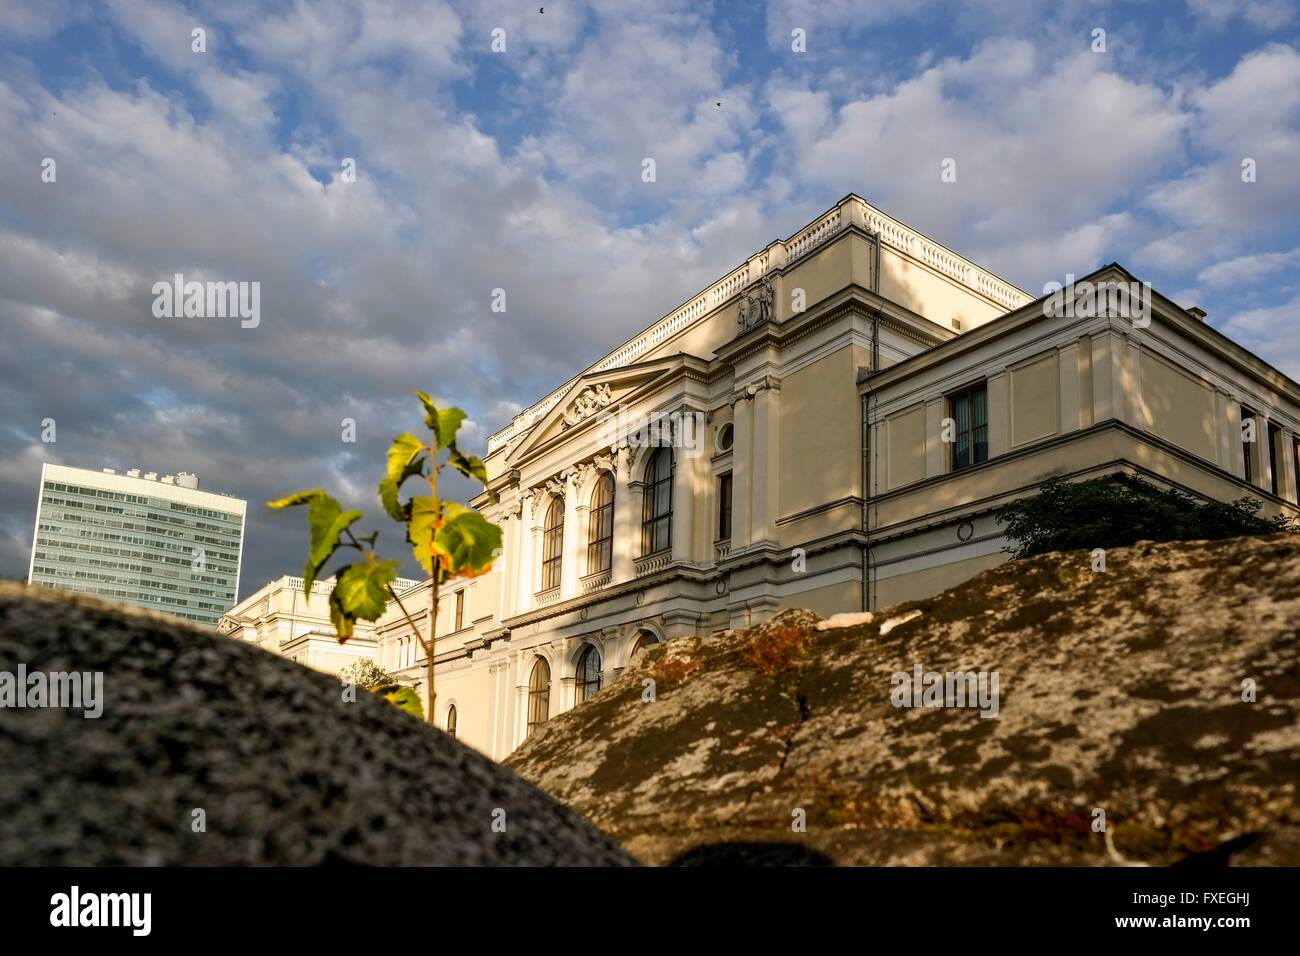 Old gravestone in front of the National Museum of Bosnia and Herzegovina and the Bosnian parliament. - Stock Image